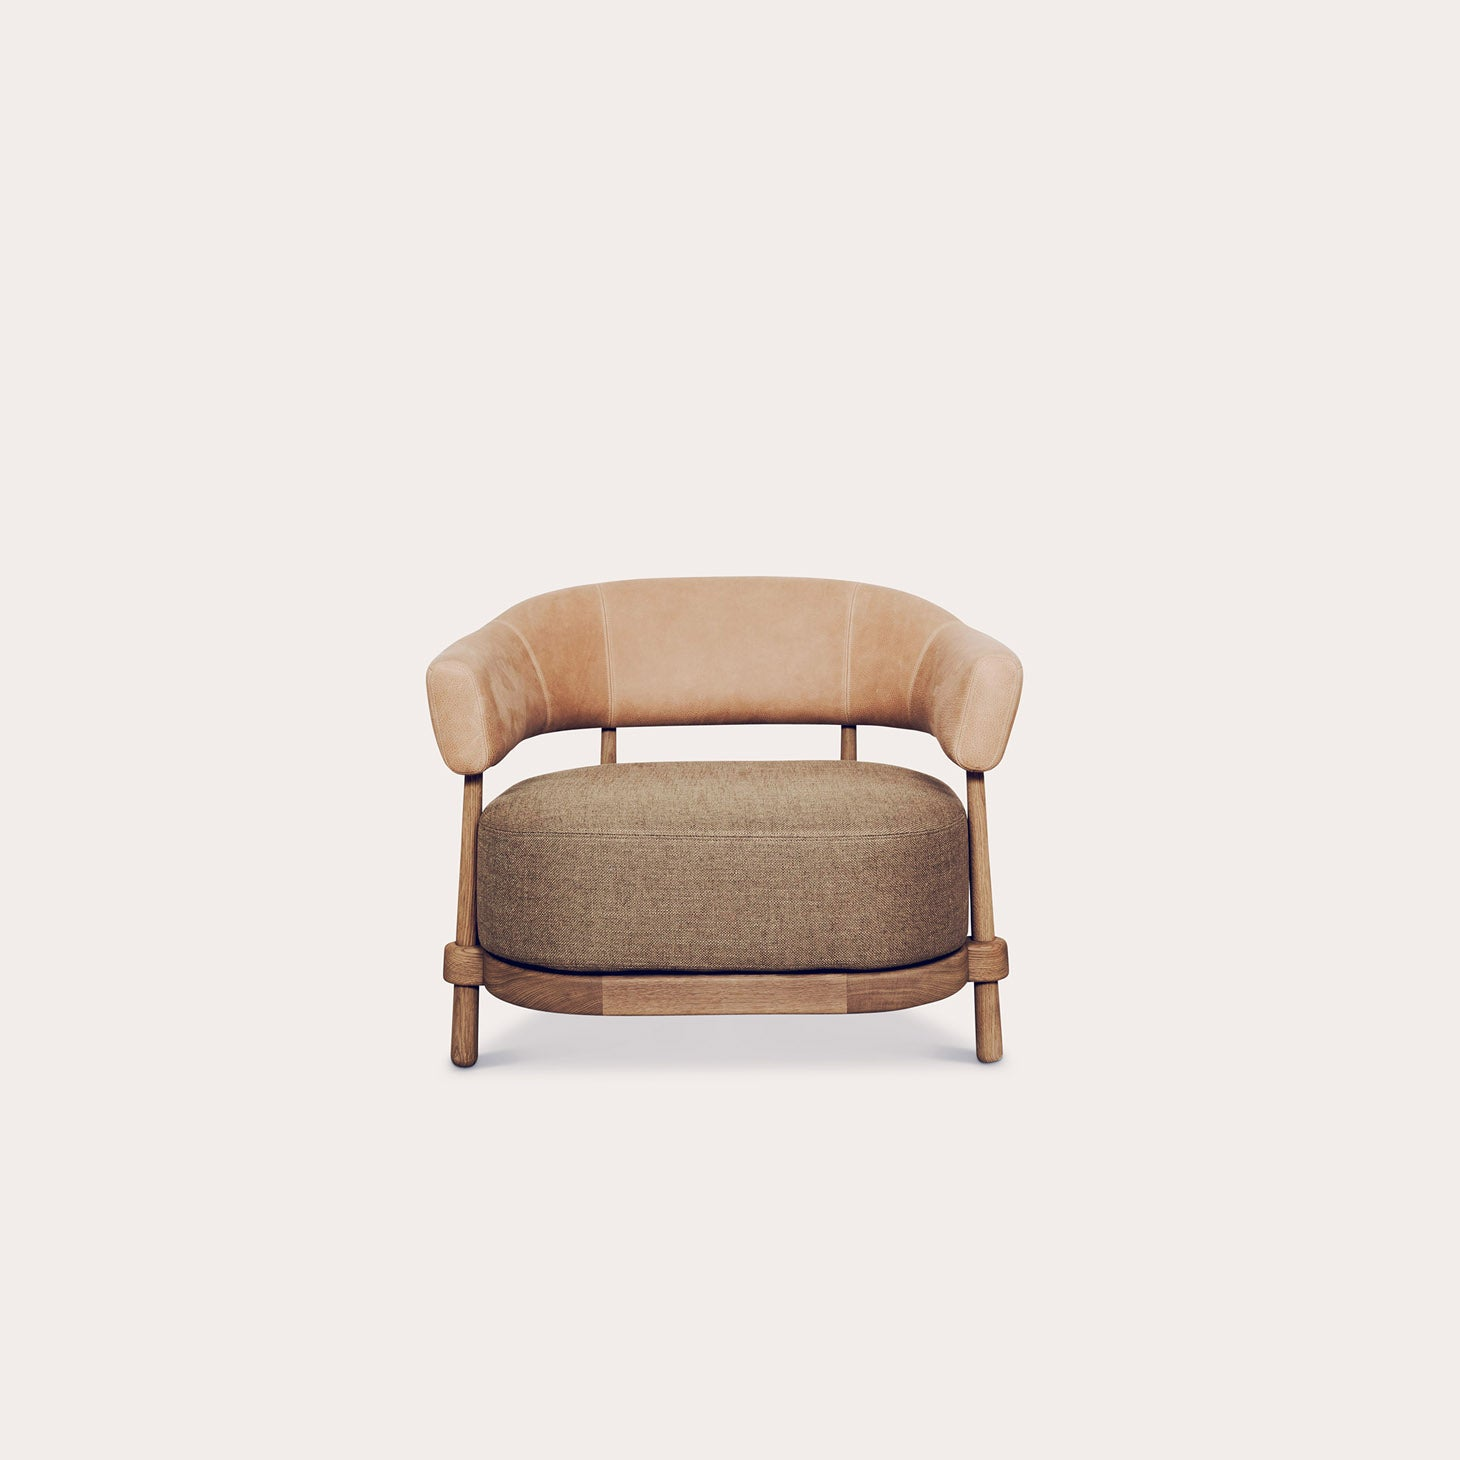 GUM Seating Christophe Delcourt Designer Furniture Sku: 008-240-10105